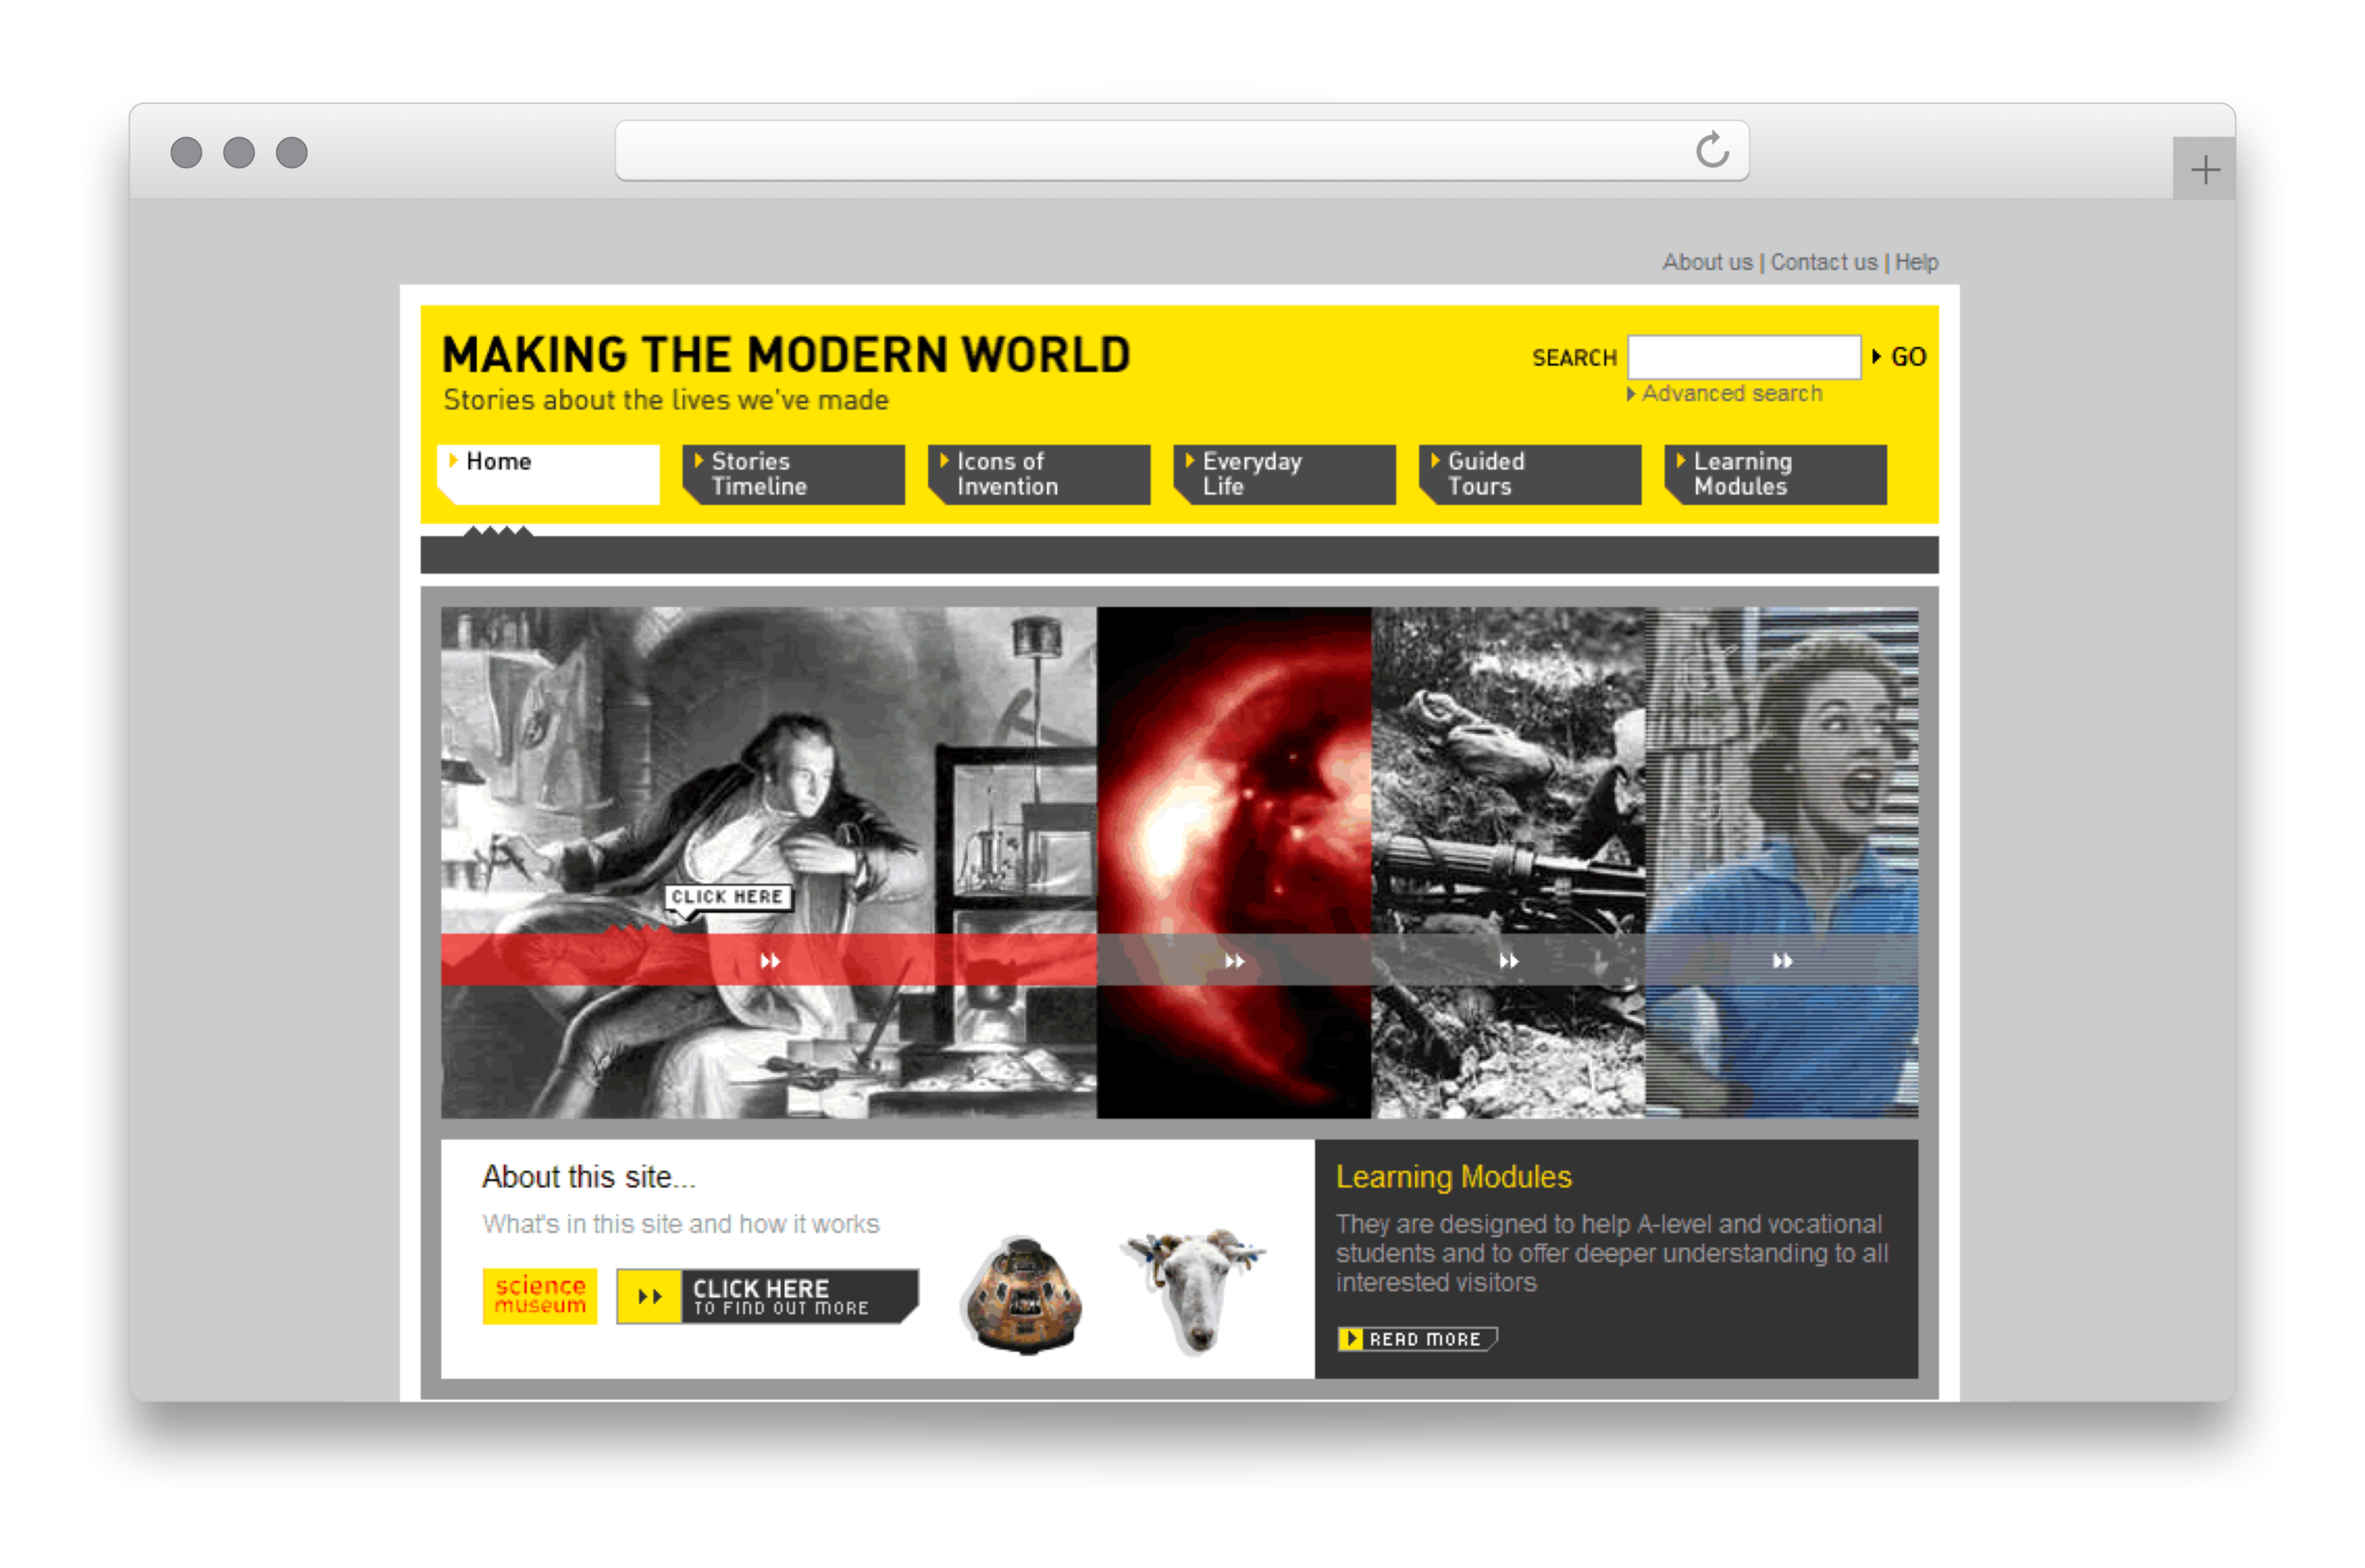 Making the Modern World site